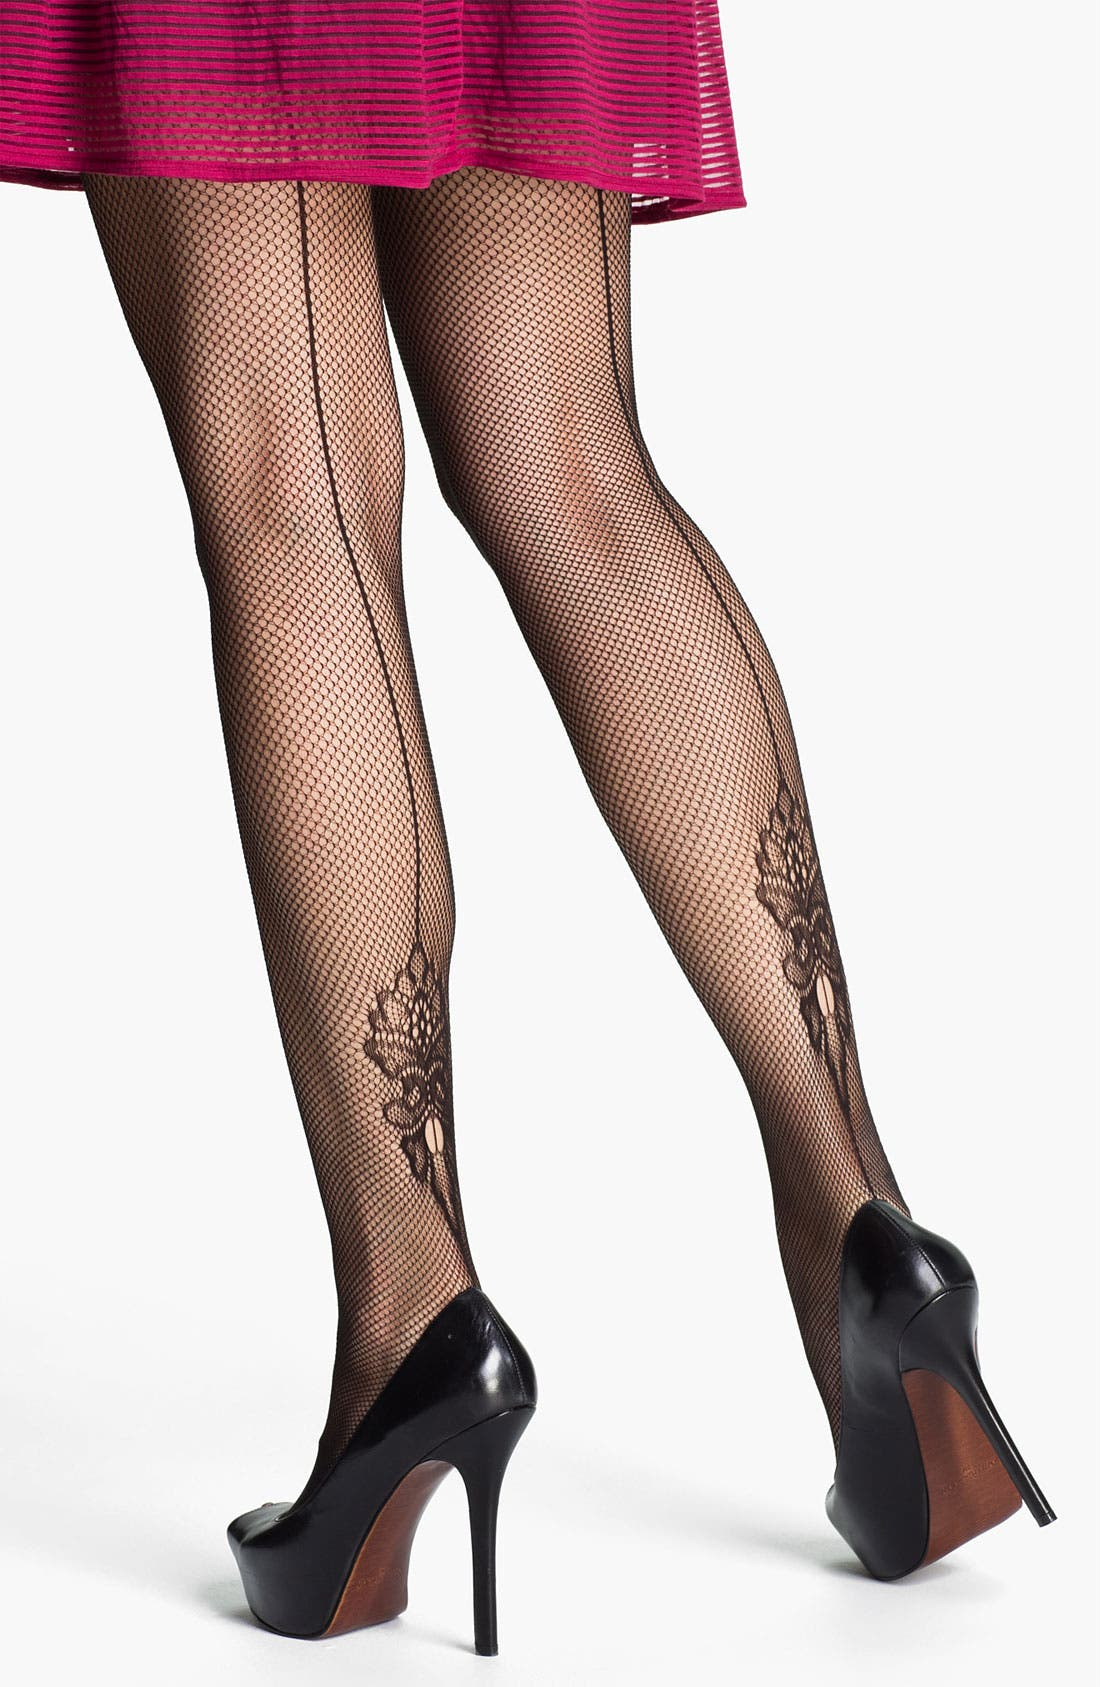 Main Image - SPANX® 'Uptown Floral' Back Seam Fishnet Pantyhose